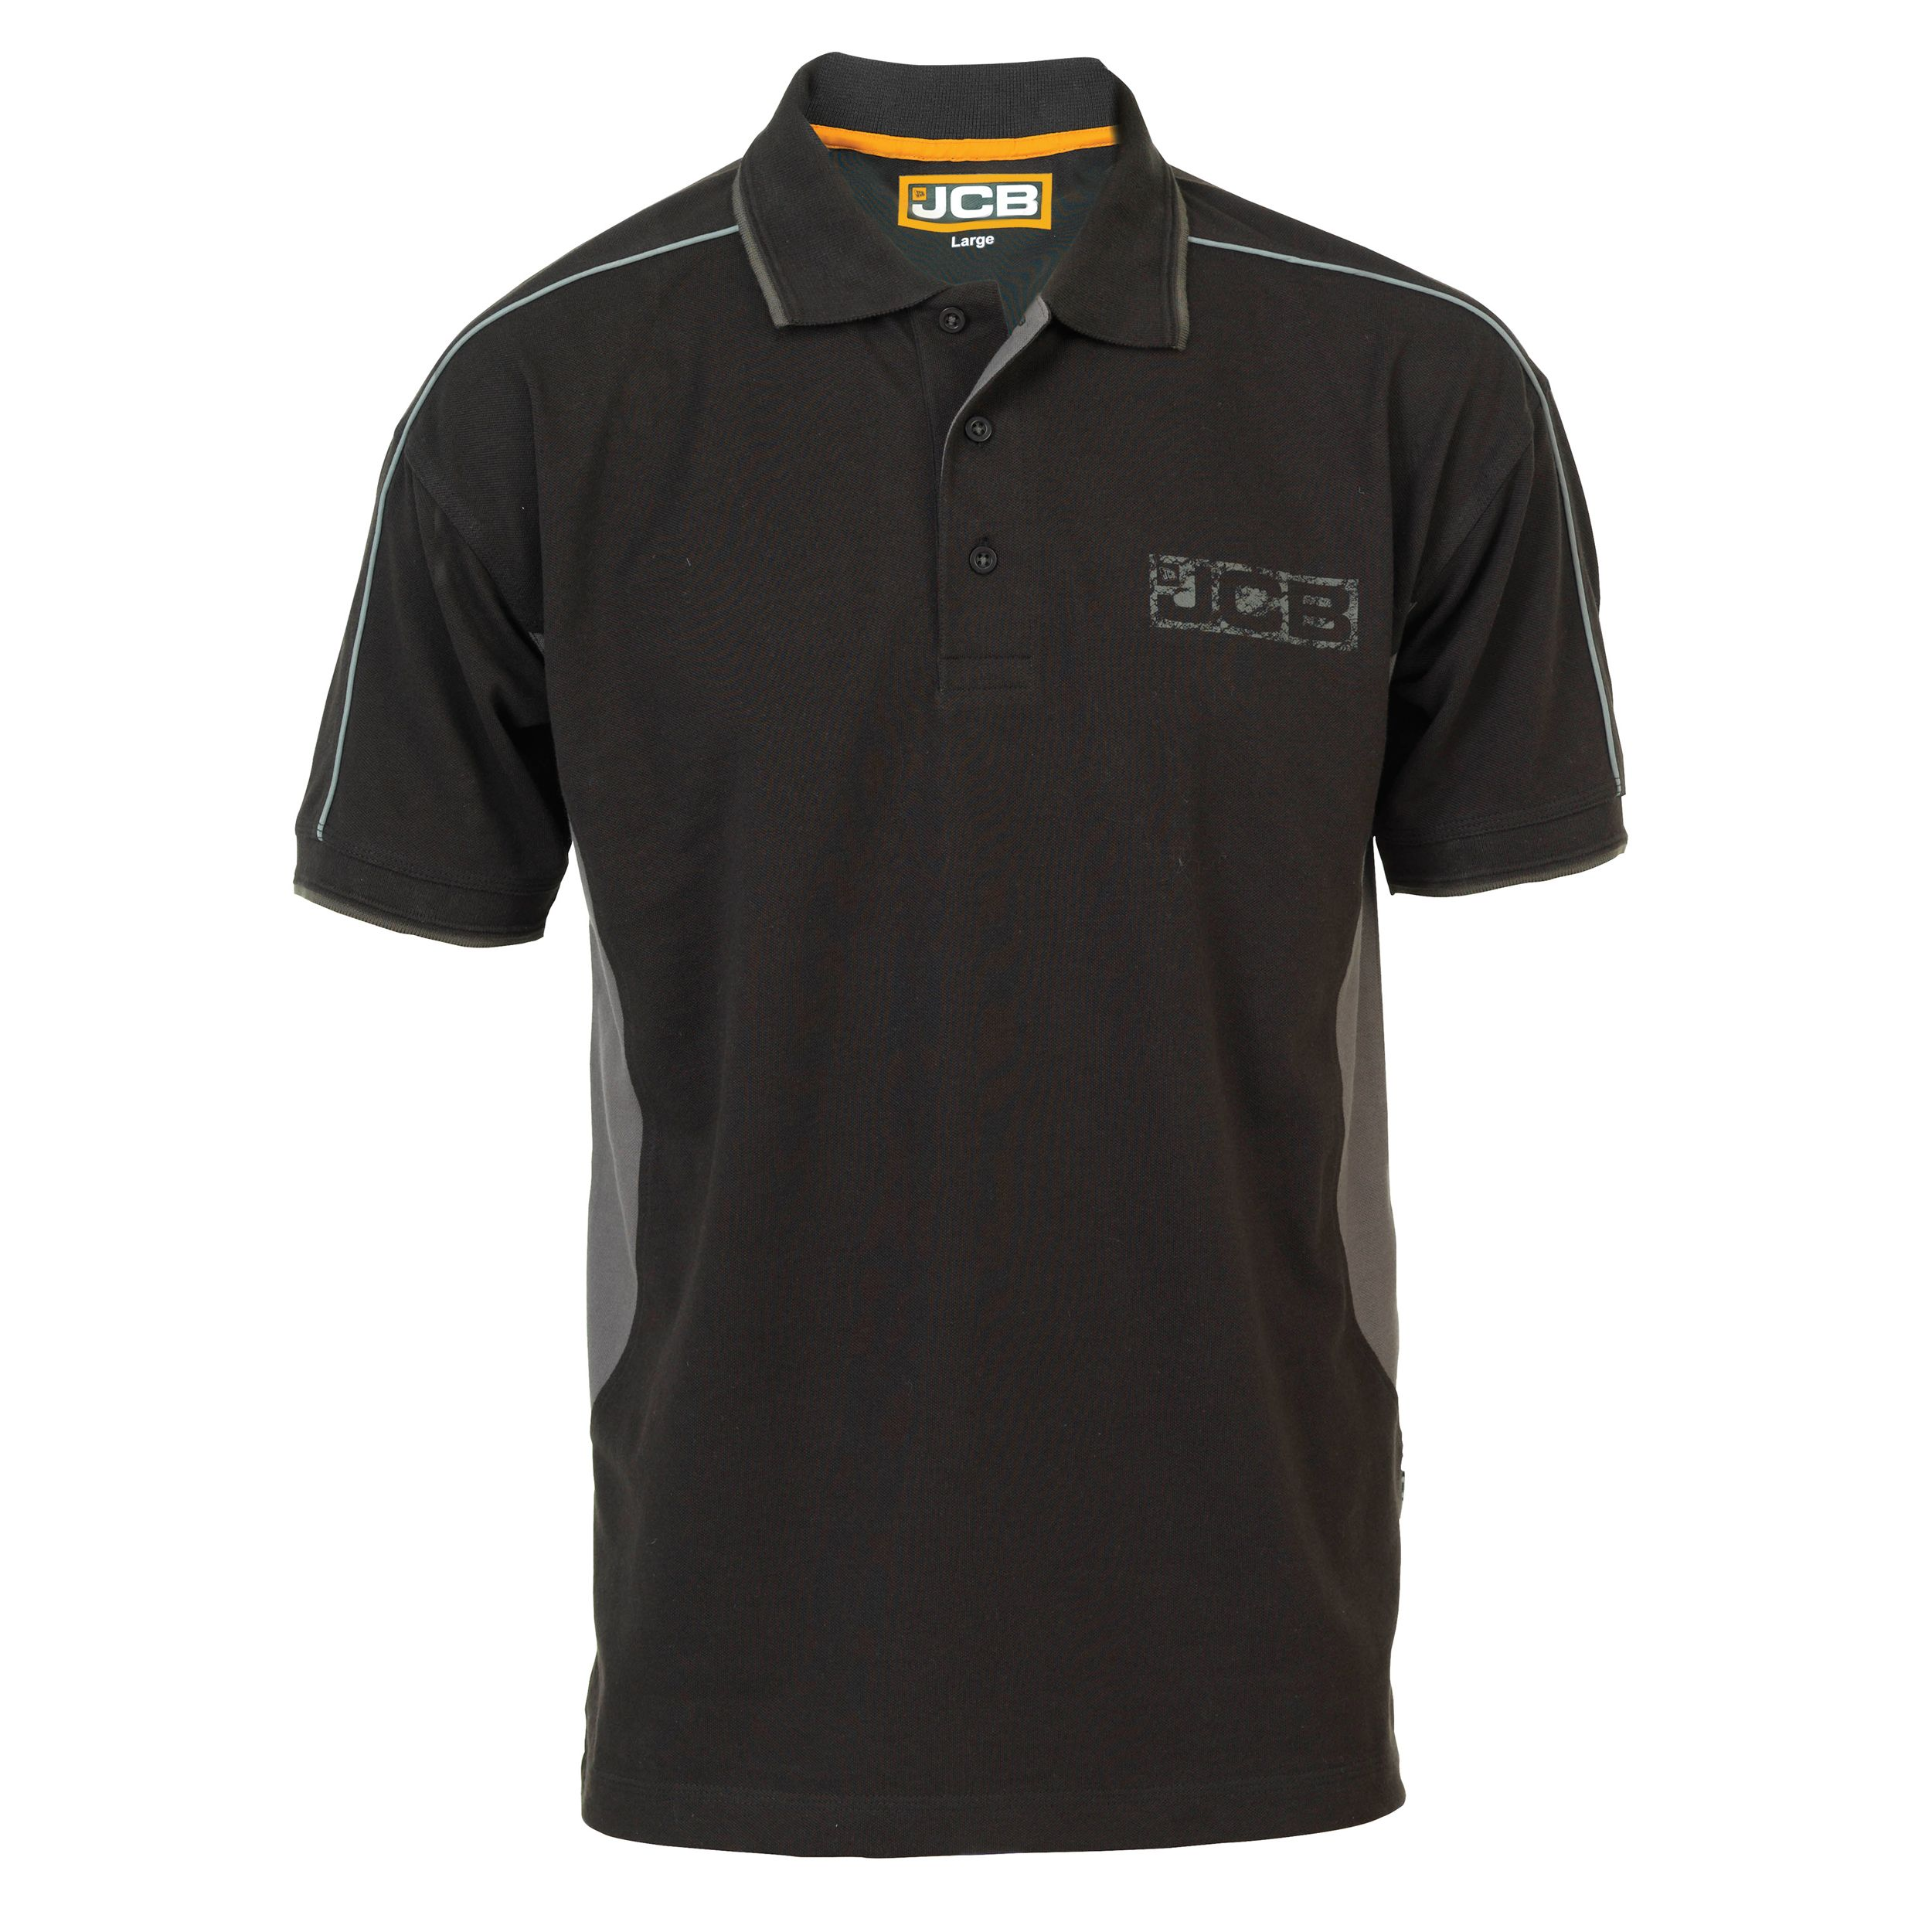 Jcb Black & Grey Fenton Polo Shirt Medium